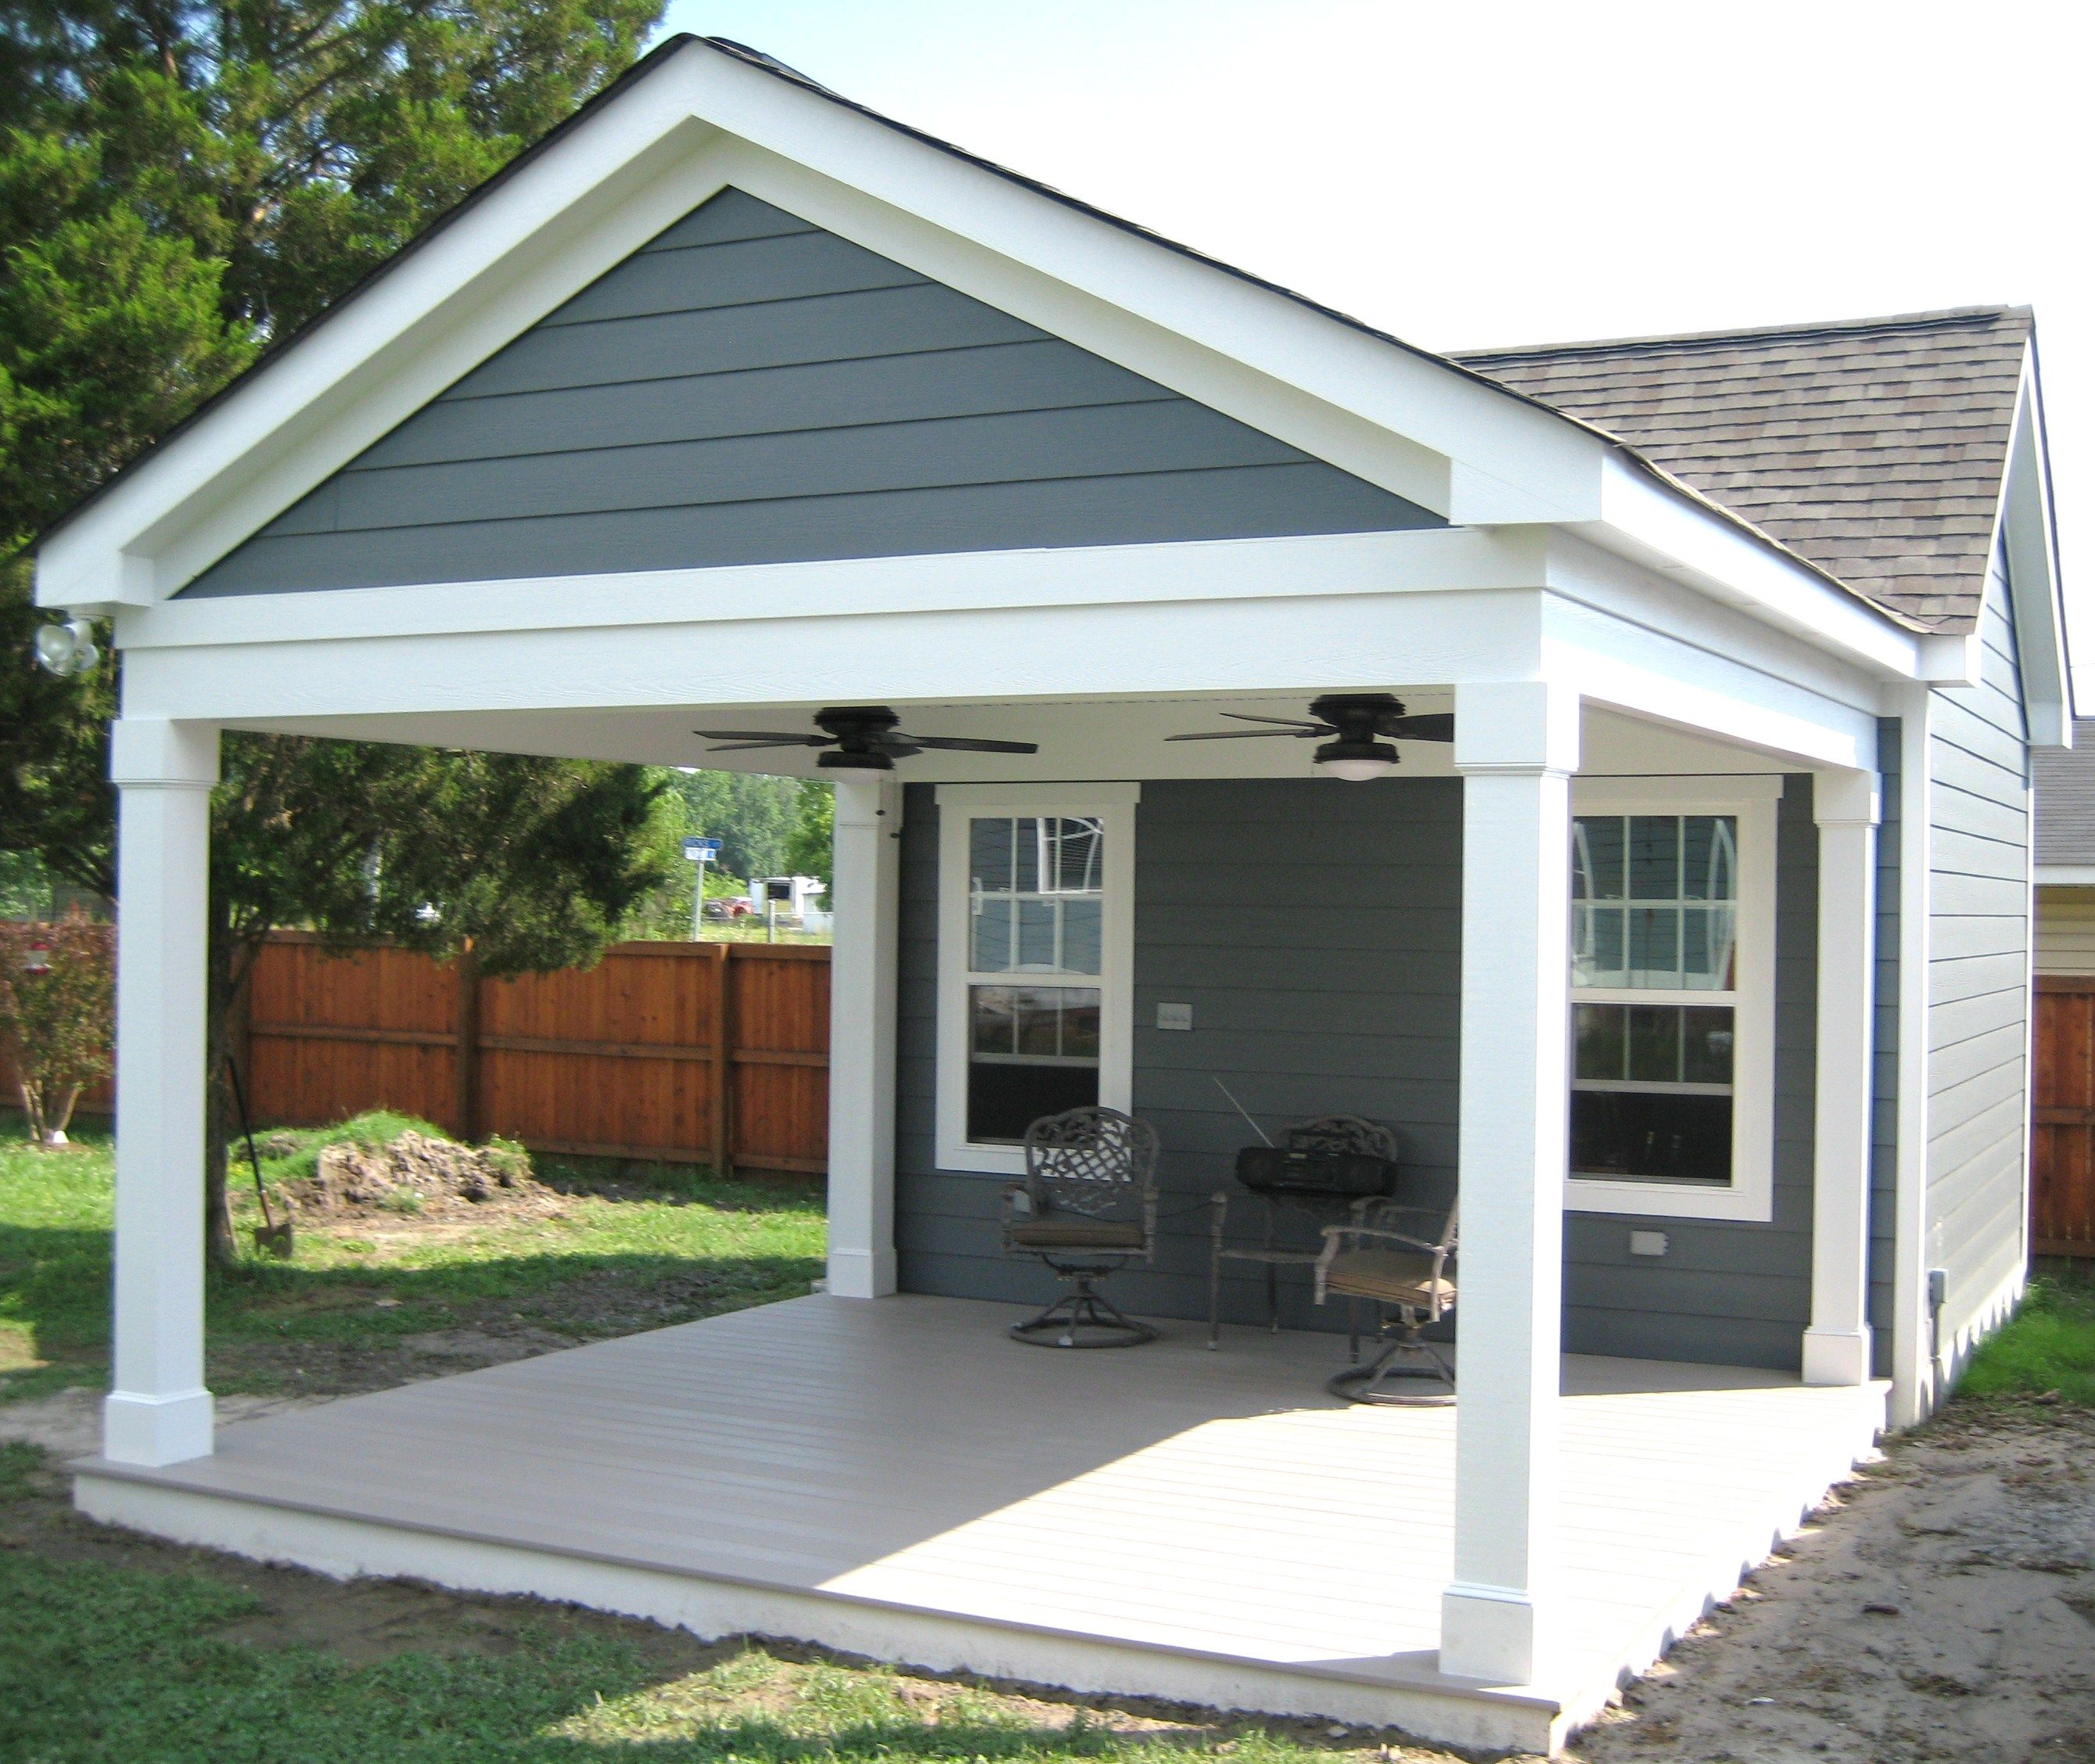 Screened Porch And Garage Oasis: Outbuilding With Covered Porch